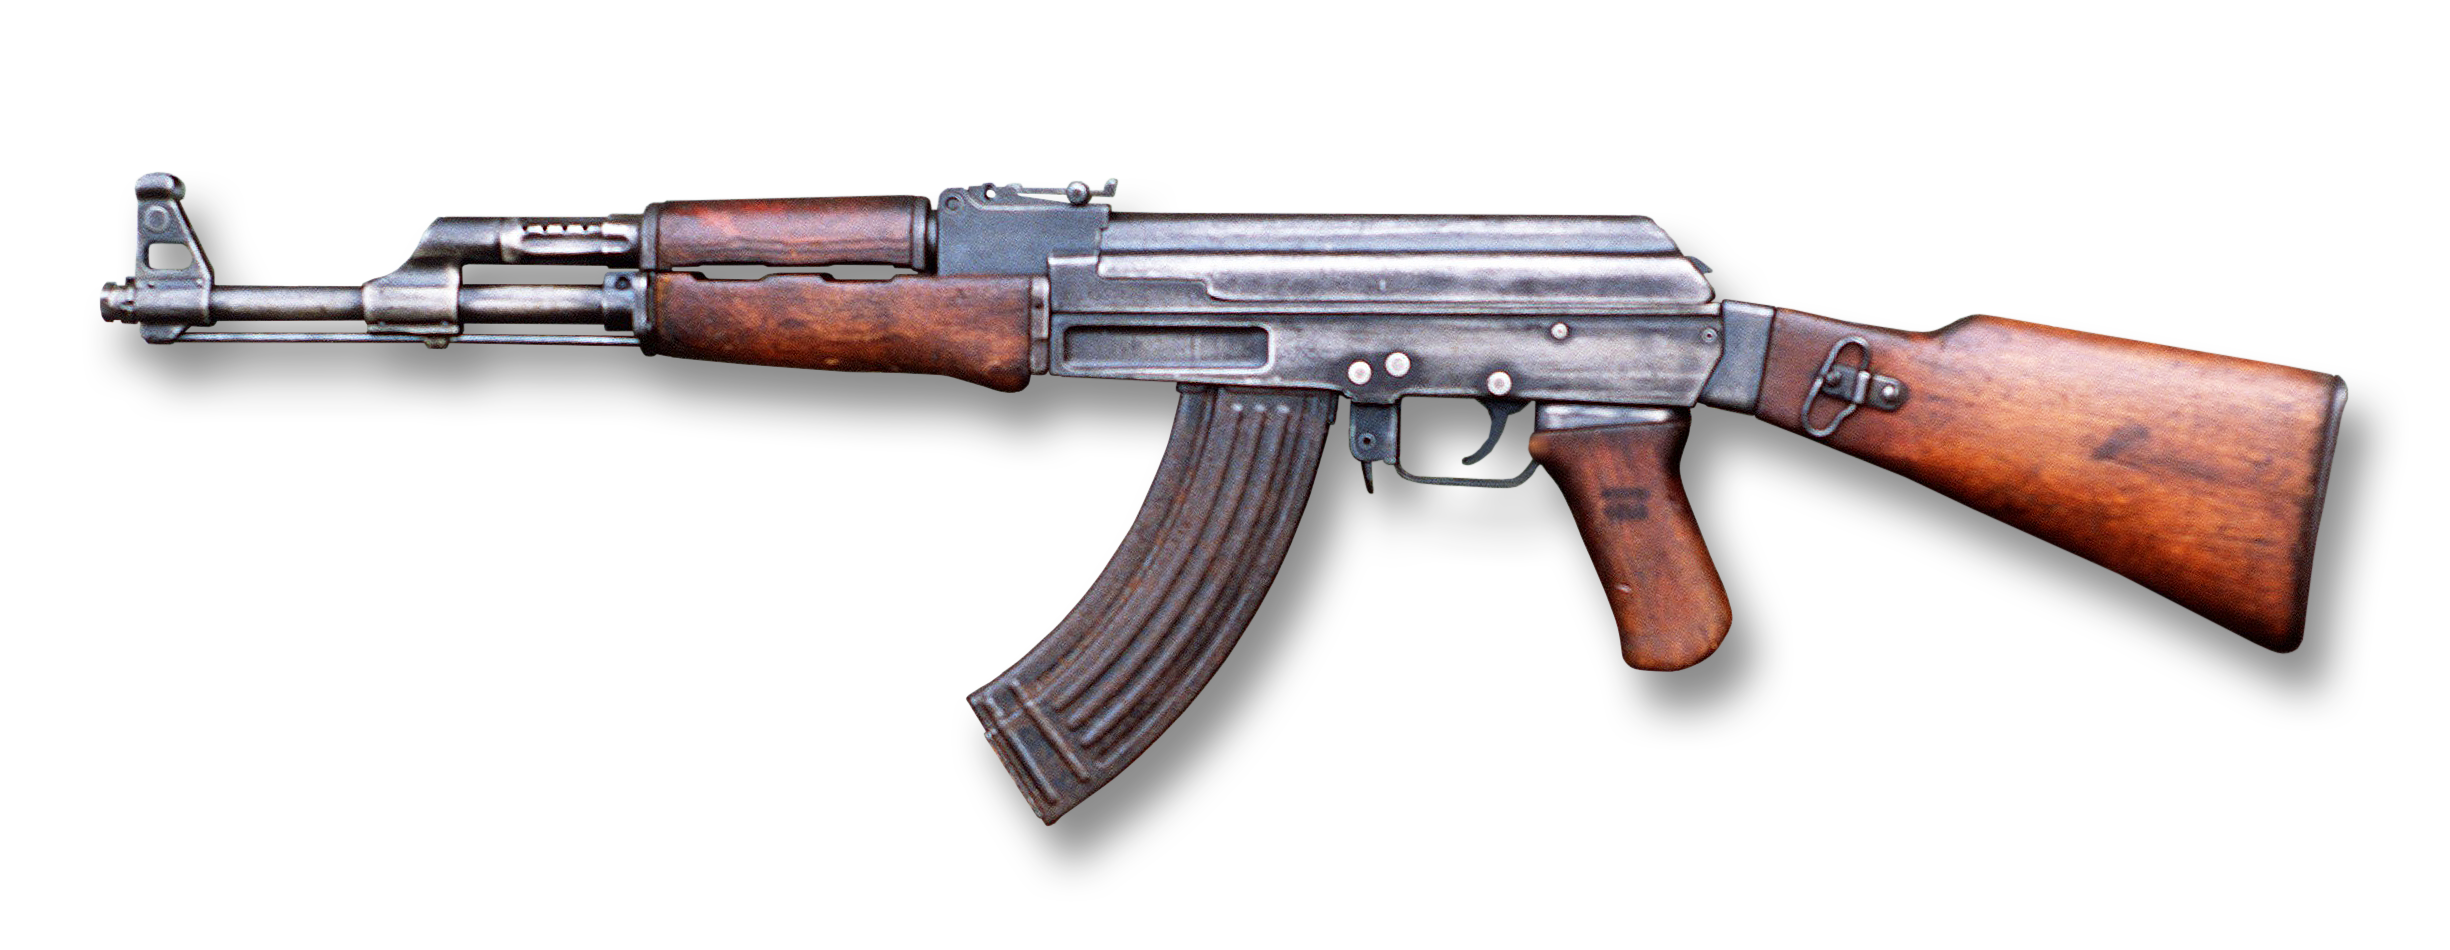 Main news thread - conflicts, terrorism, crisis from around the globe - Page 33 AK-47_type_II_noBG